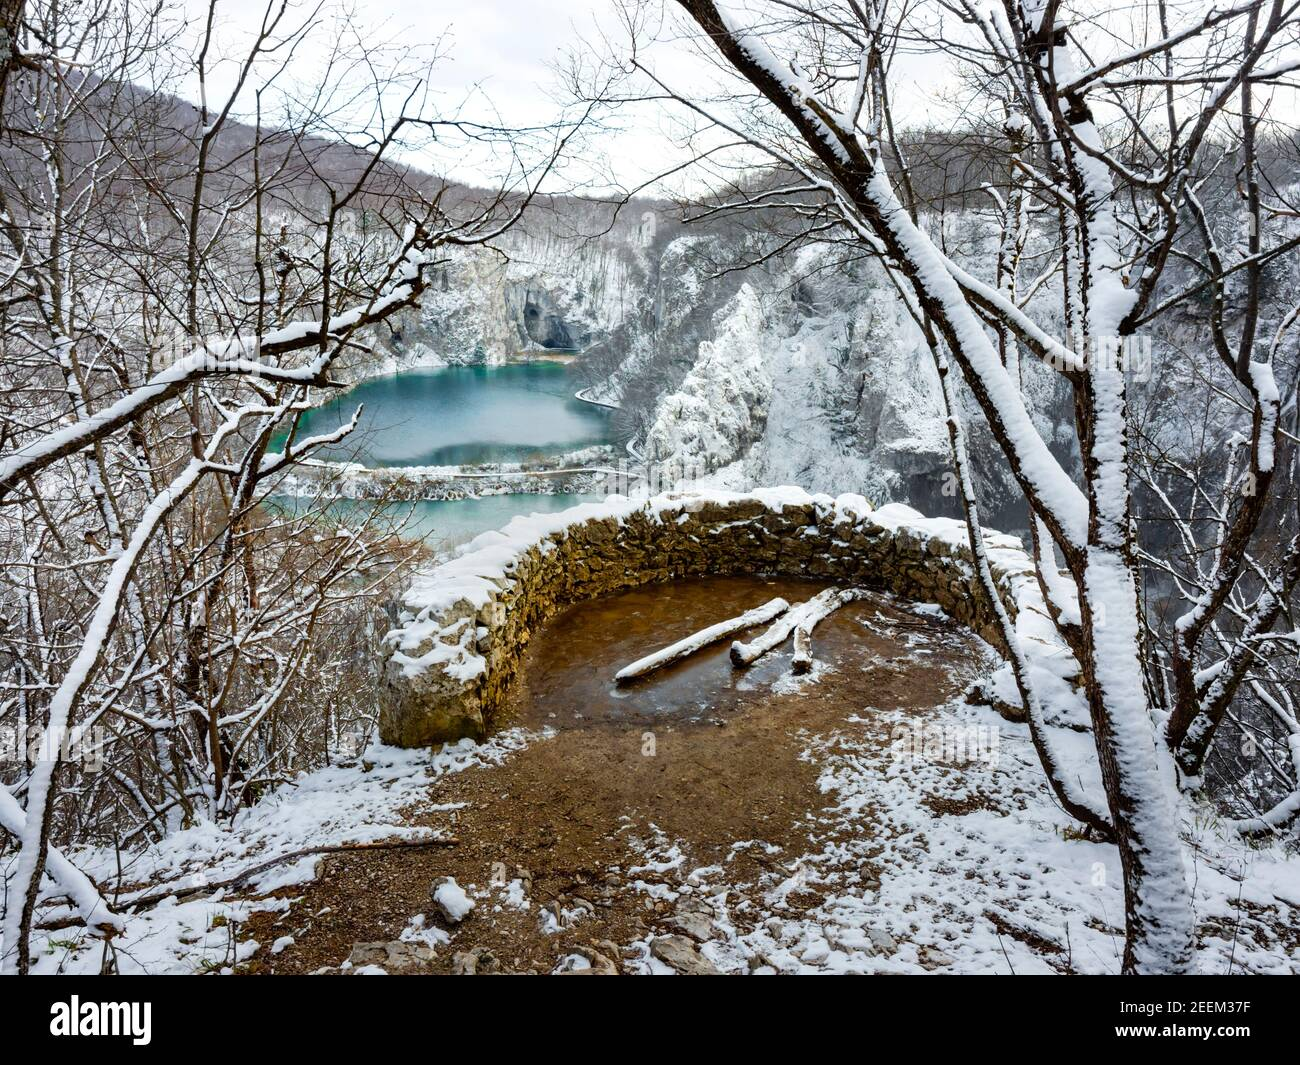 Sightseeing place near Veliki slap waterfall in Plitvice lakes Croatia Europe Winter under covered cover snow ice Stock Photo